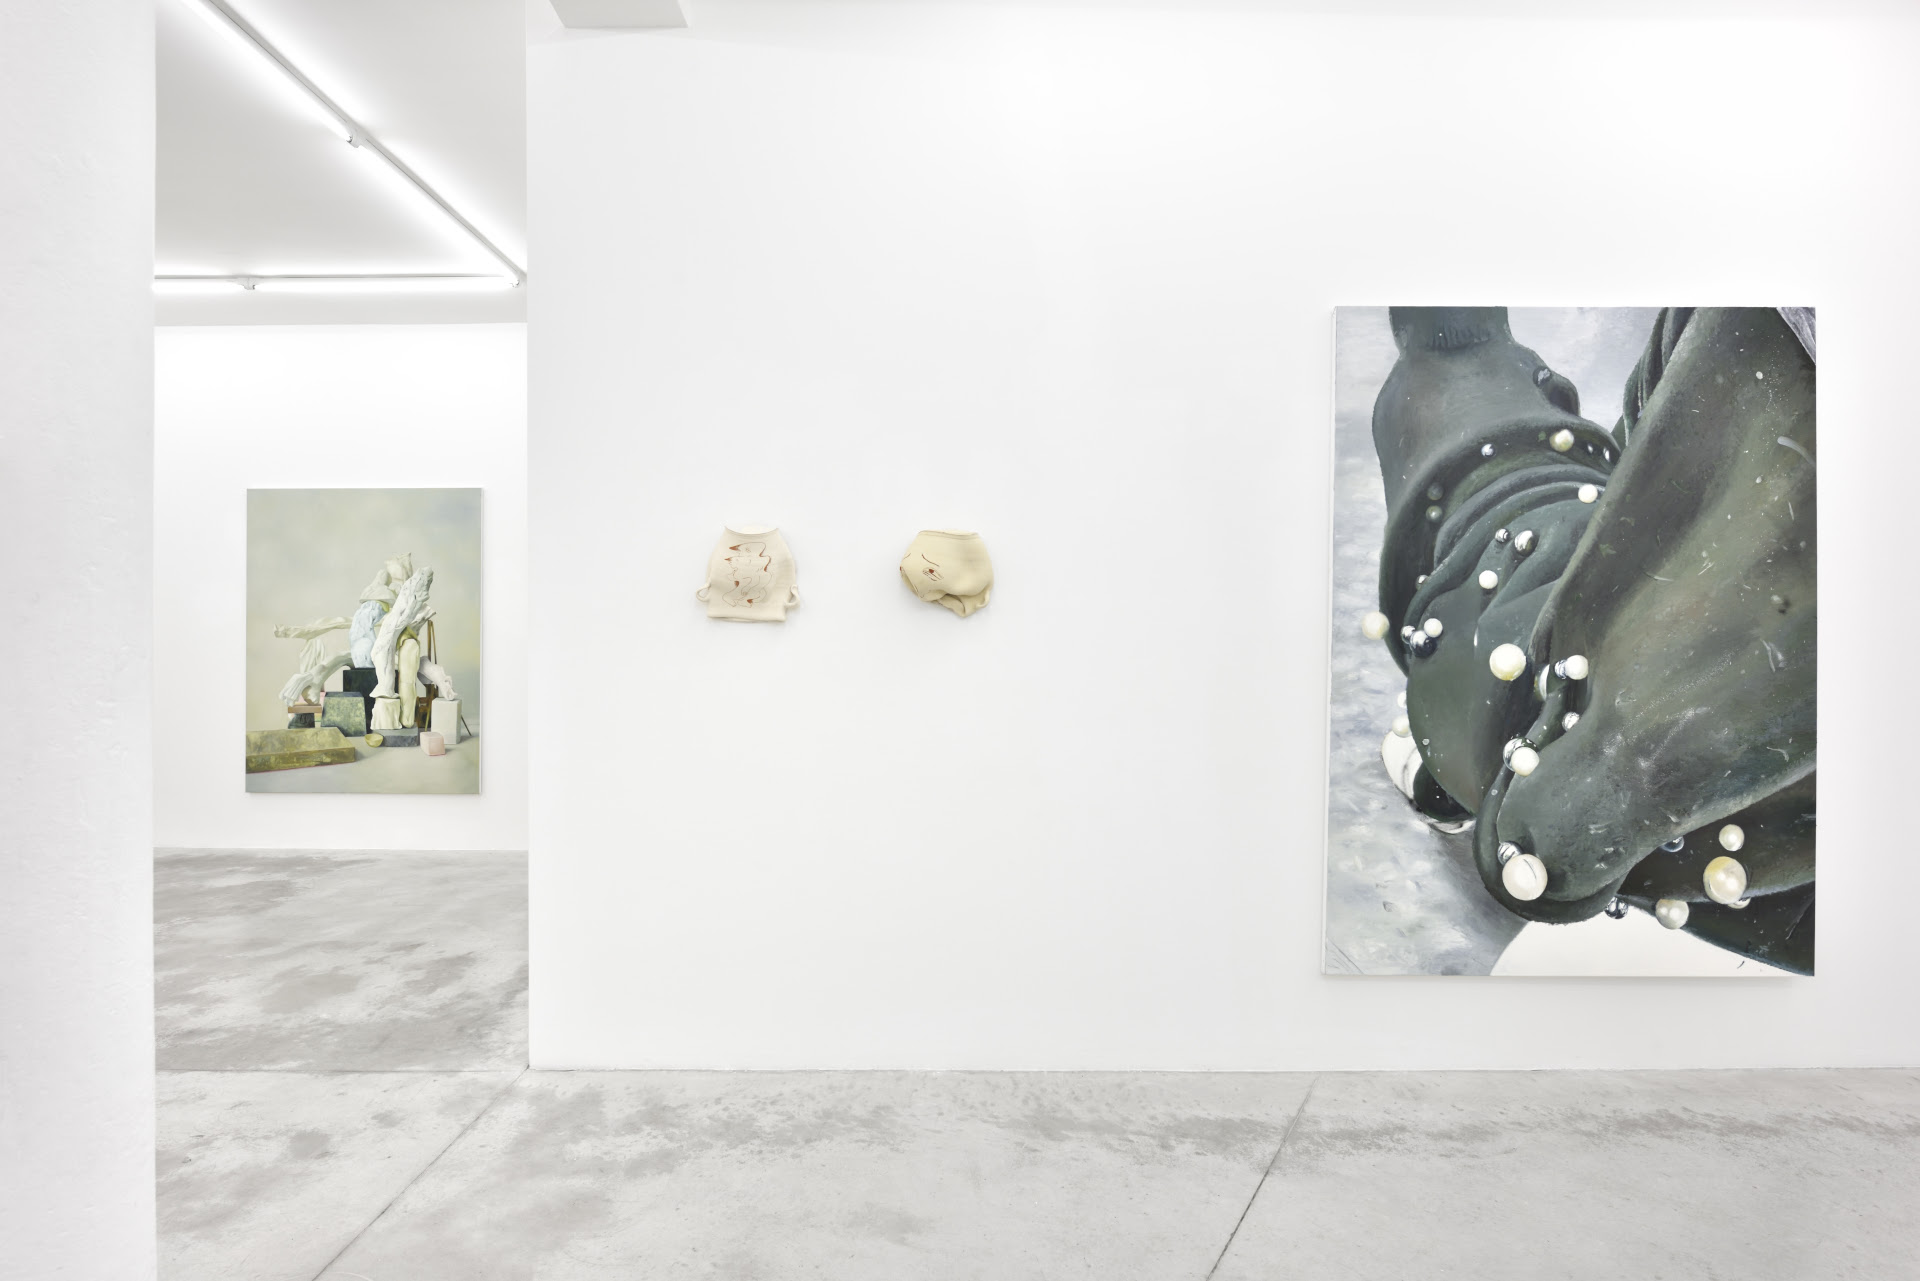 © Galerie Praz-Delavallade, Paris, Exhibition view, photo credit: Rebecca Fanuele